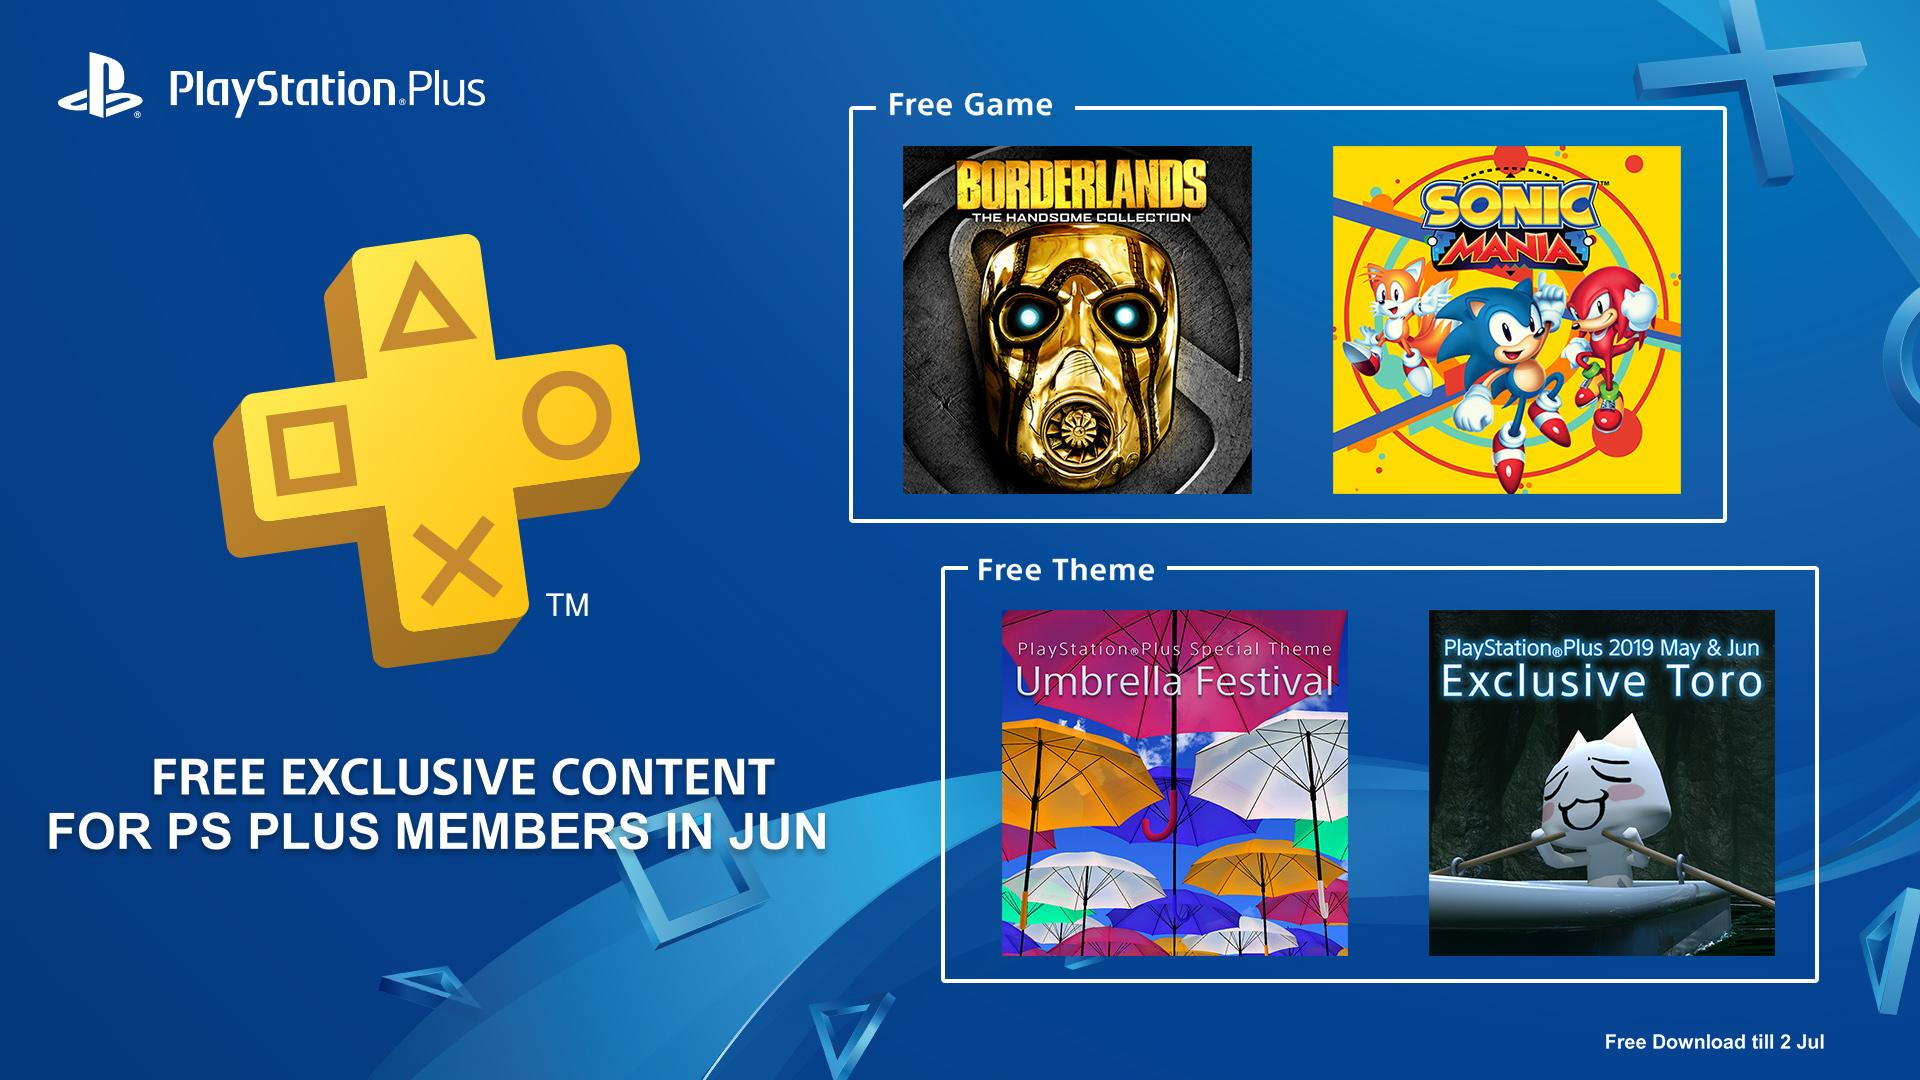 PlayStation Plus Games for June 2019 Announced